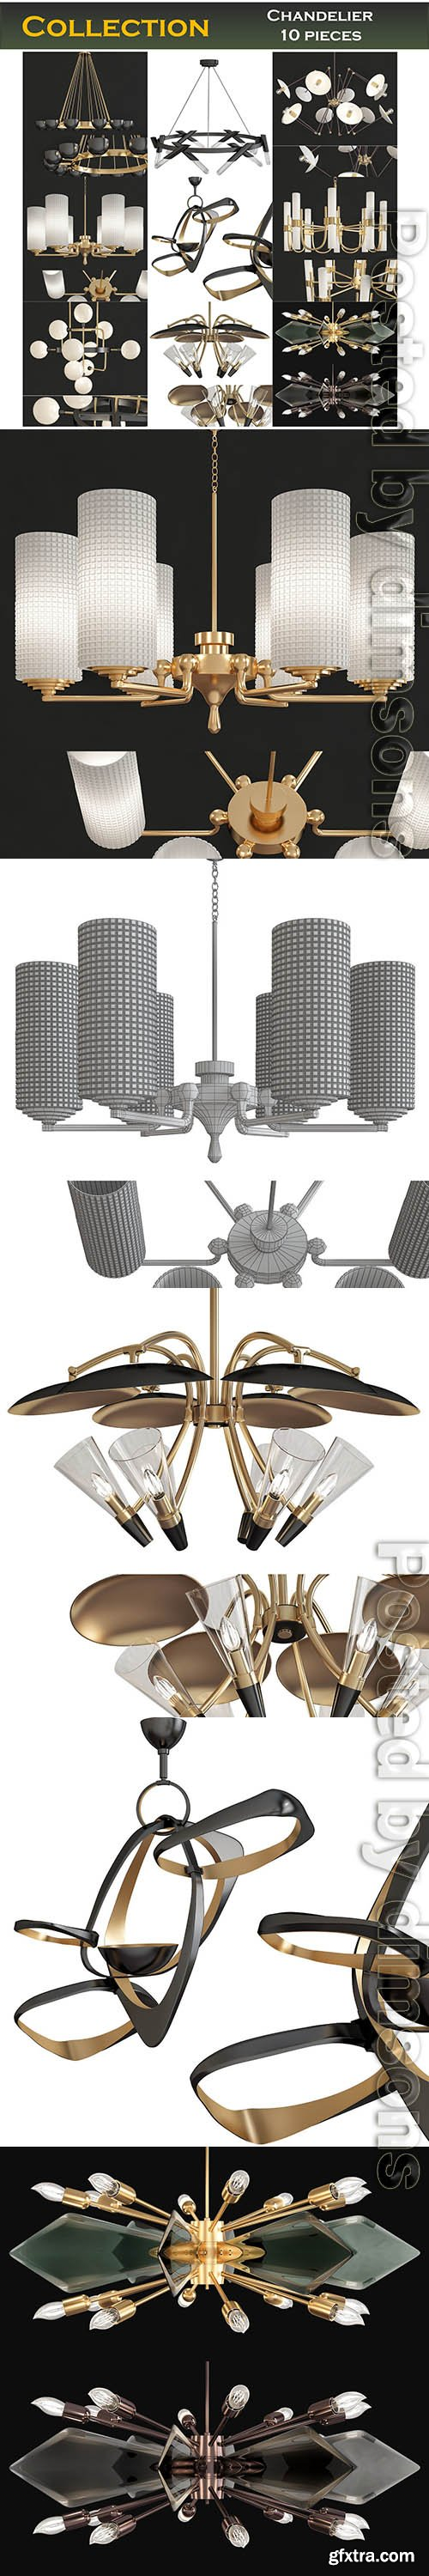 Cgtrader - Chandeliers 3d models Collection 10 models Low-poly 3D model